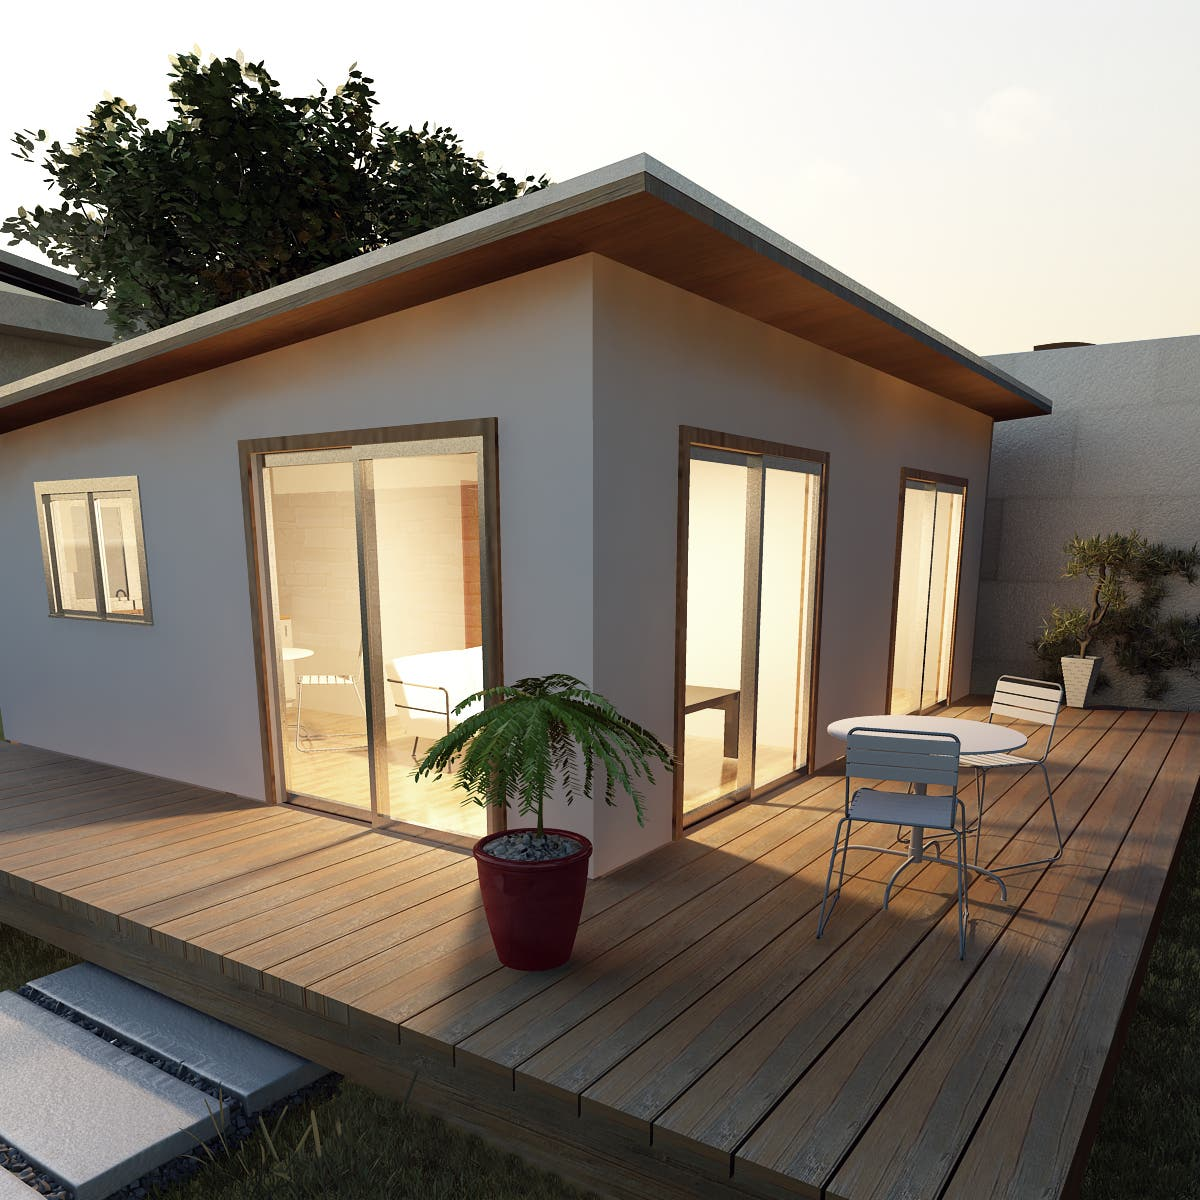 Exterior Small Home Design Ideas: The P-POD